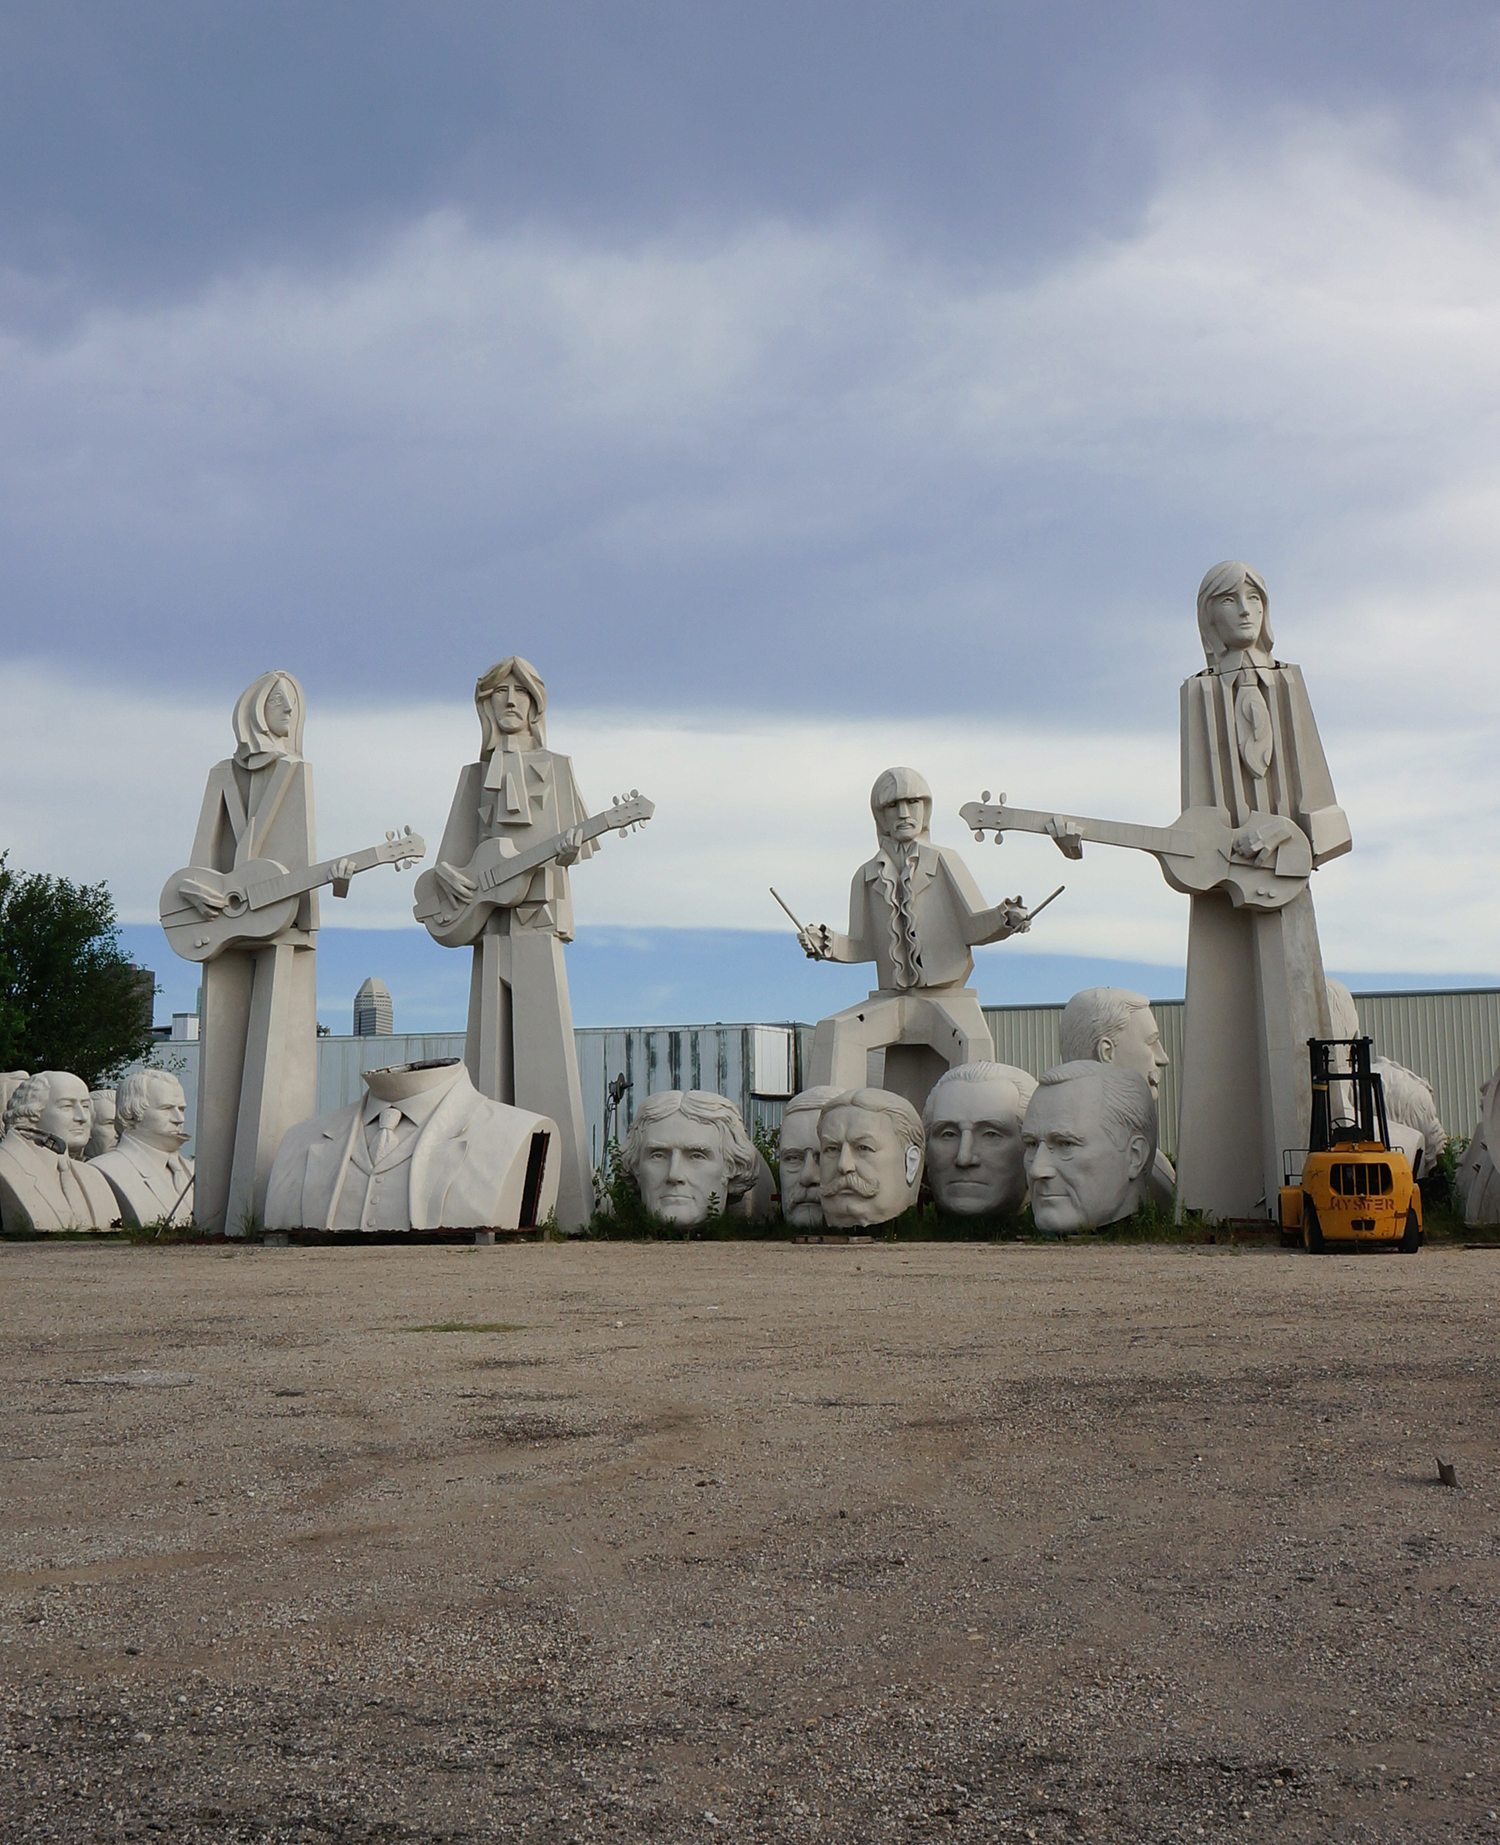 The Beatles statues in Houston